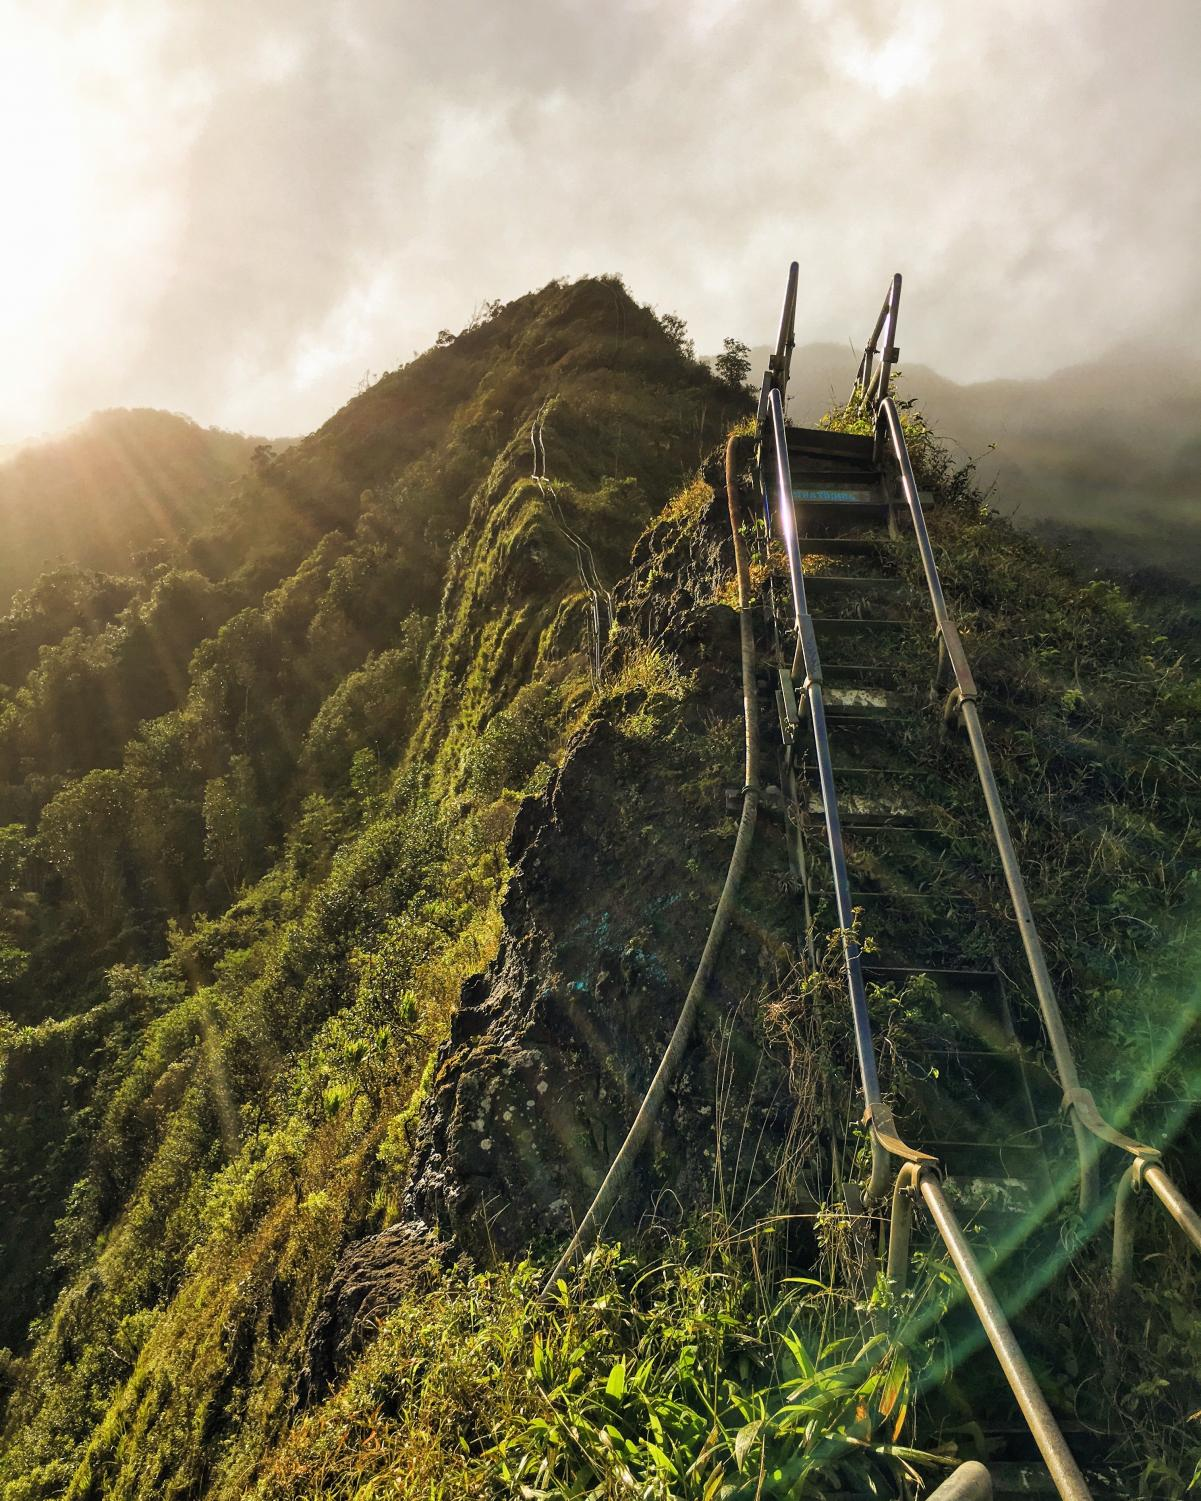 The view from the first platform of the Stairway to Heaven hike located in Kaneohe, Hawaii.